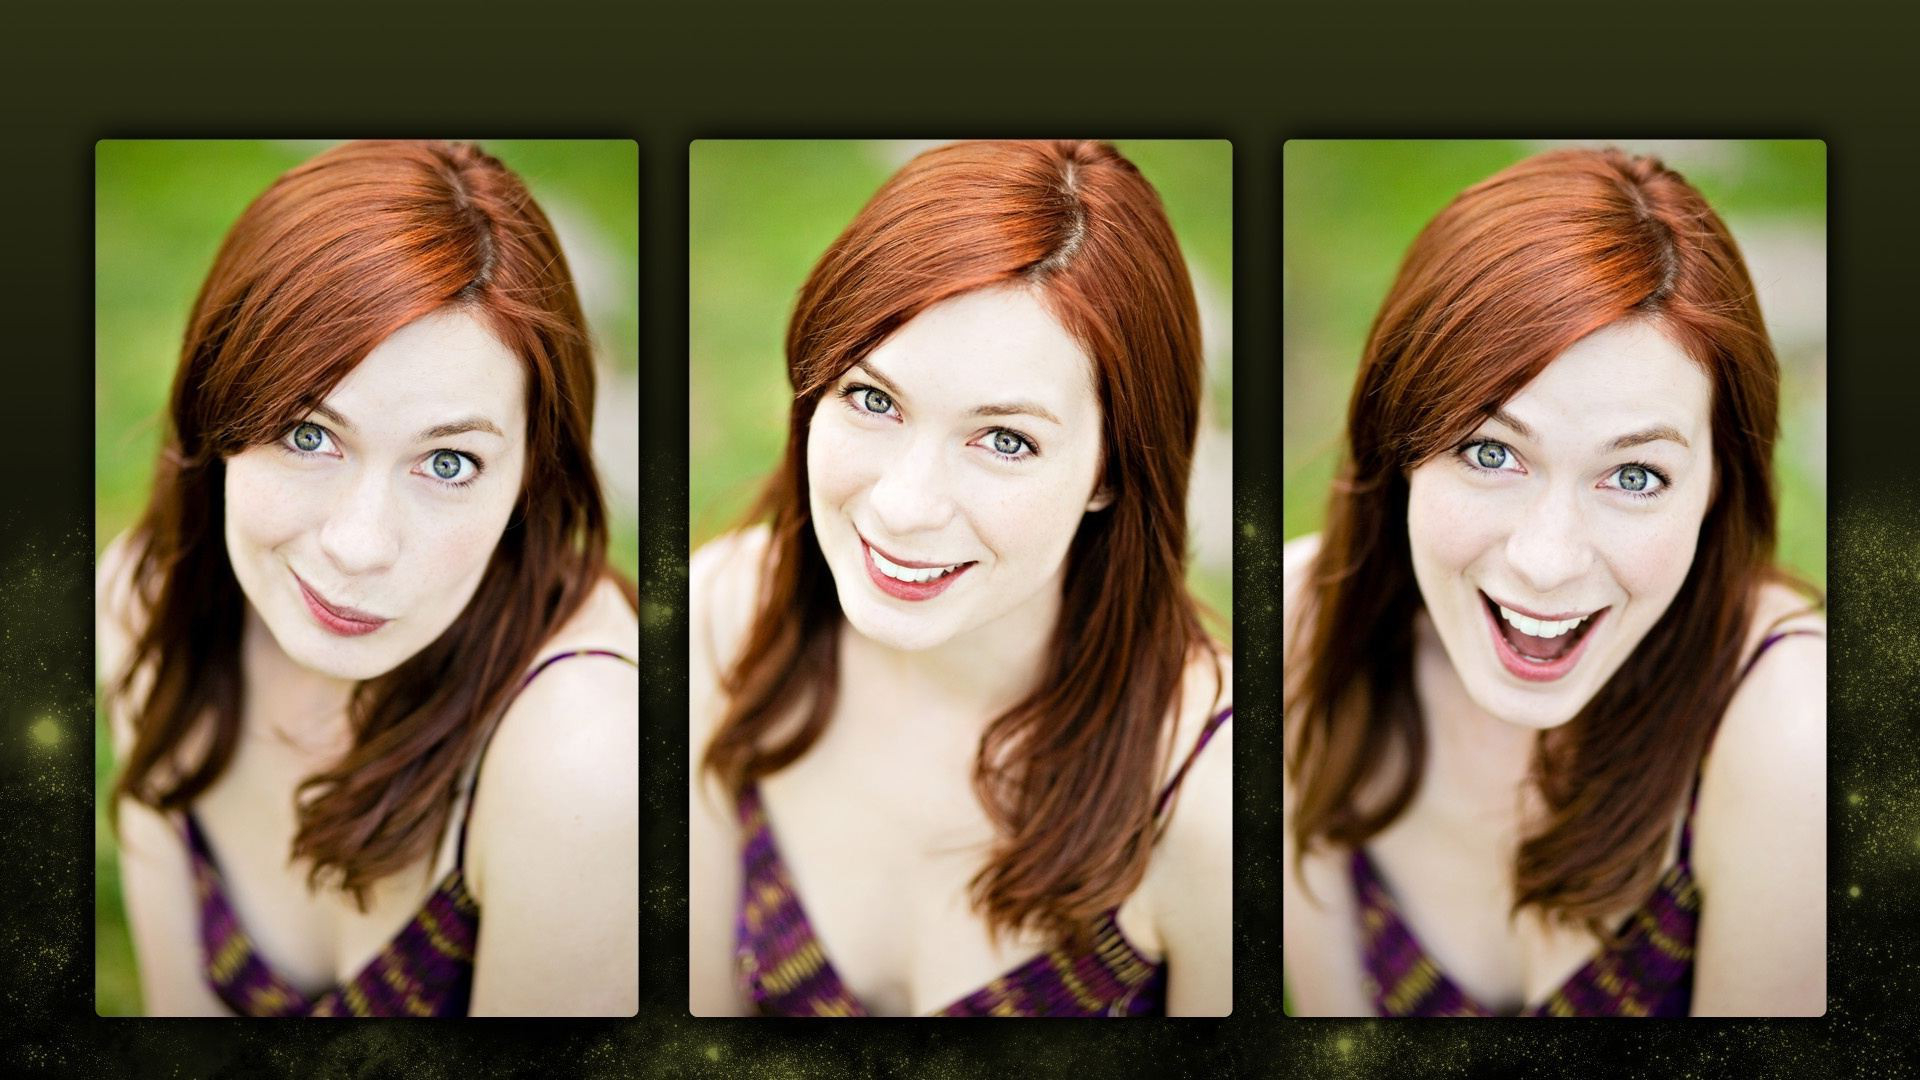 1920x1080 - Felicia Day Wallpapers 7